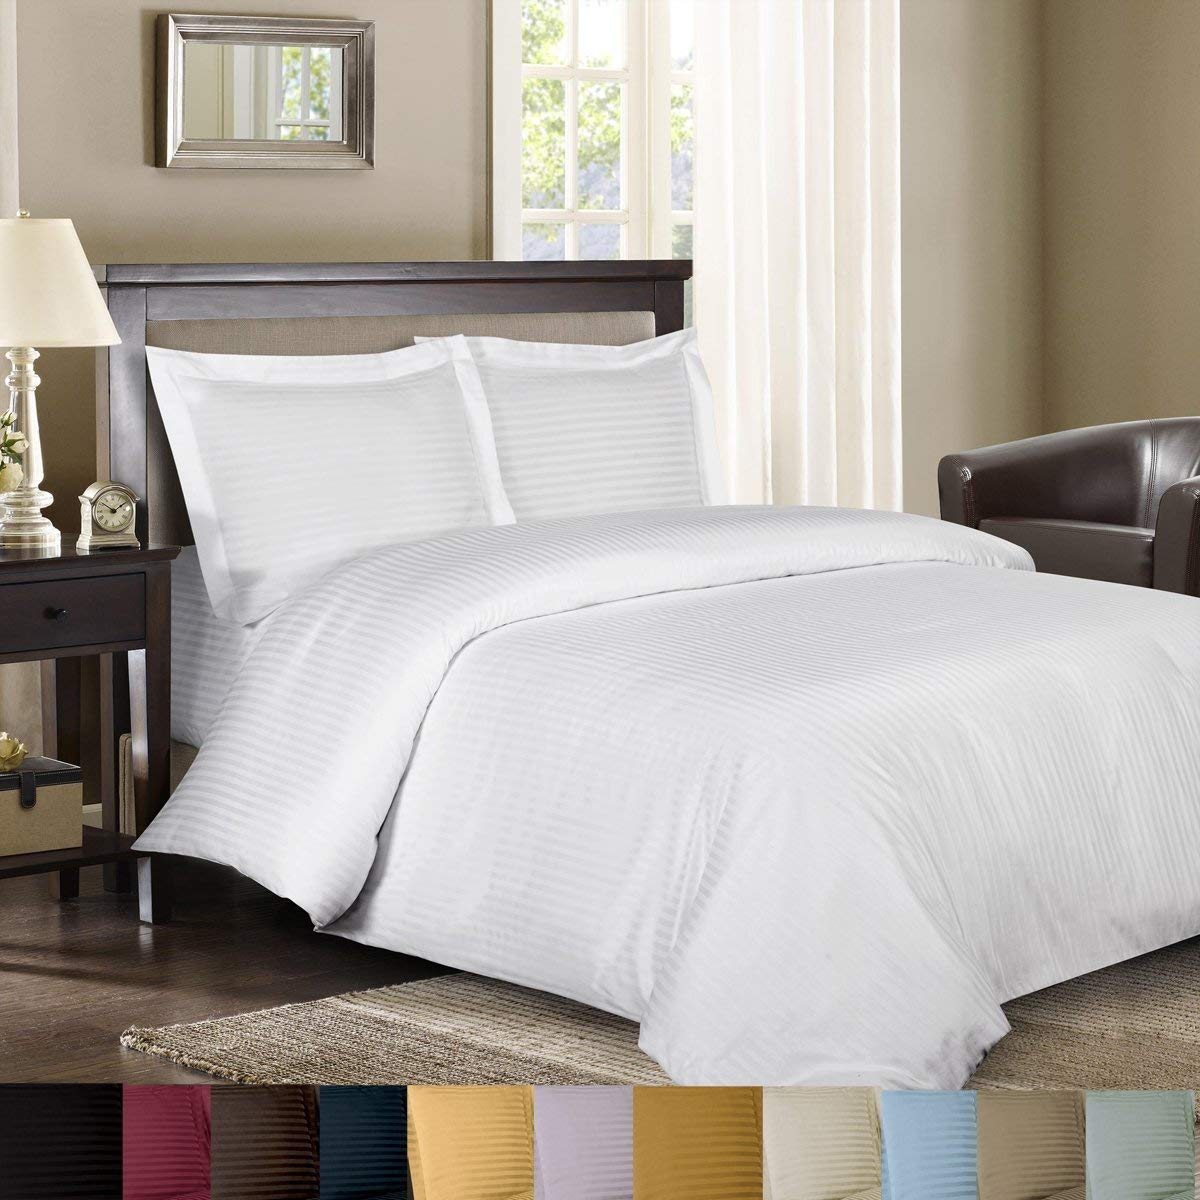 Image of Royal Hotel's Stripe Sage 600-Thread-Count Sheet Set - Best 600 Thread Count Sheets